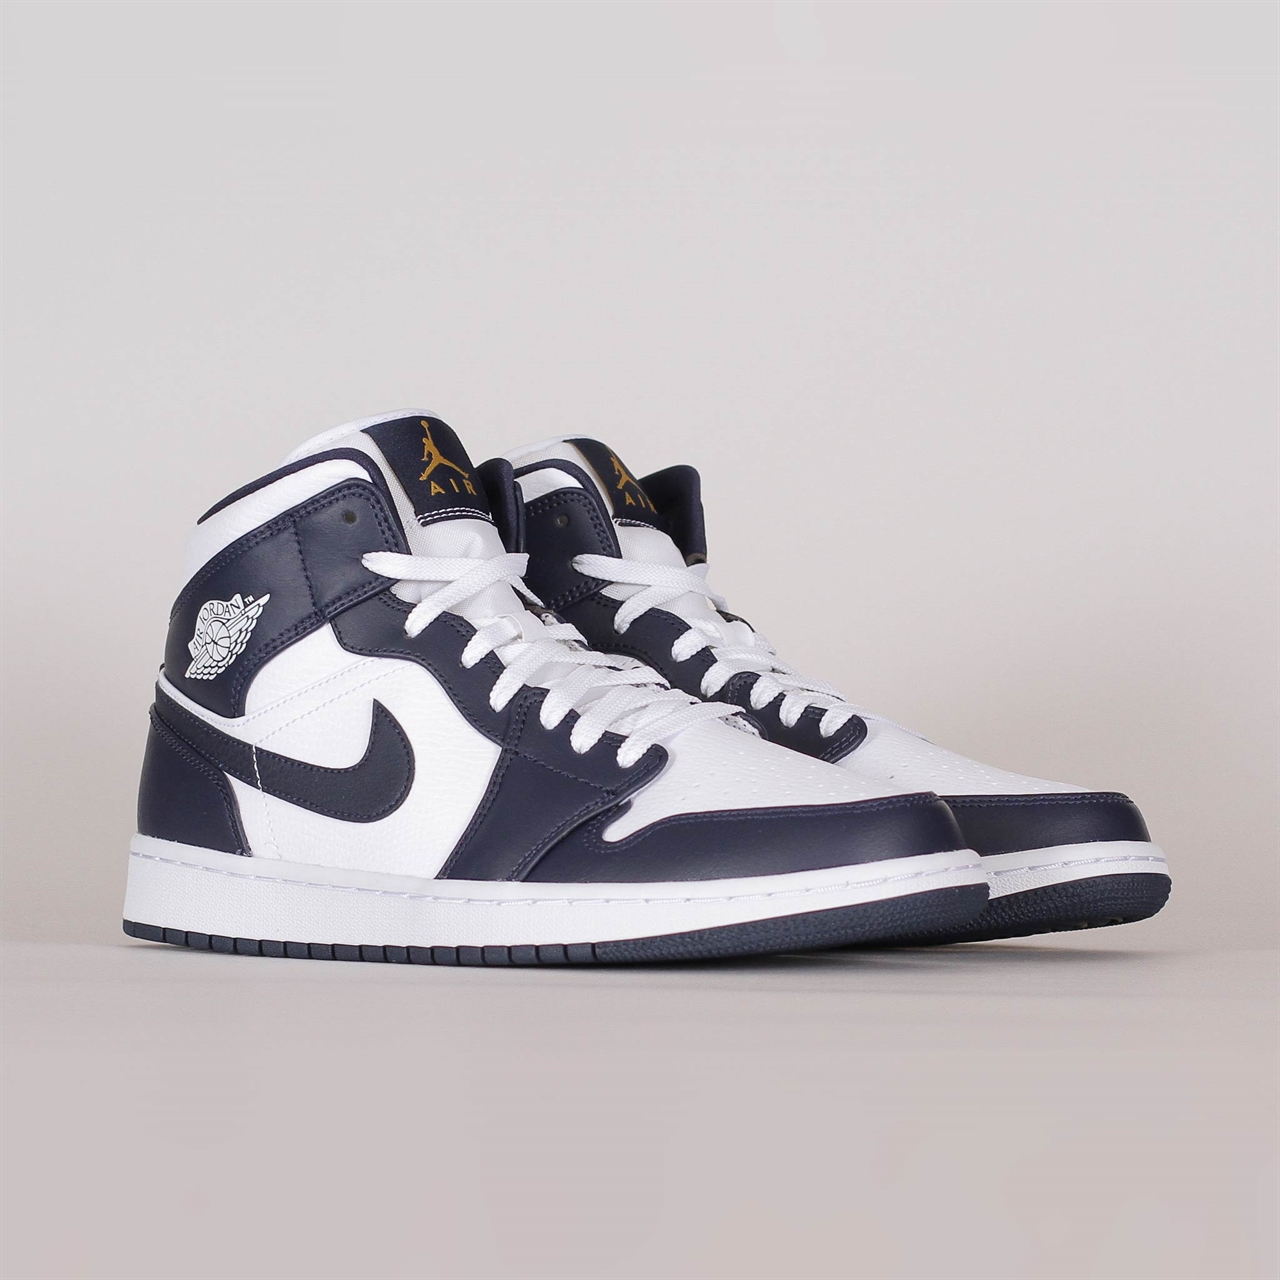 Shelta Nike Air Jordan 1 Mid 554724 174